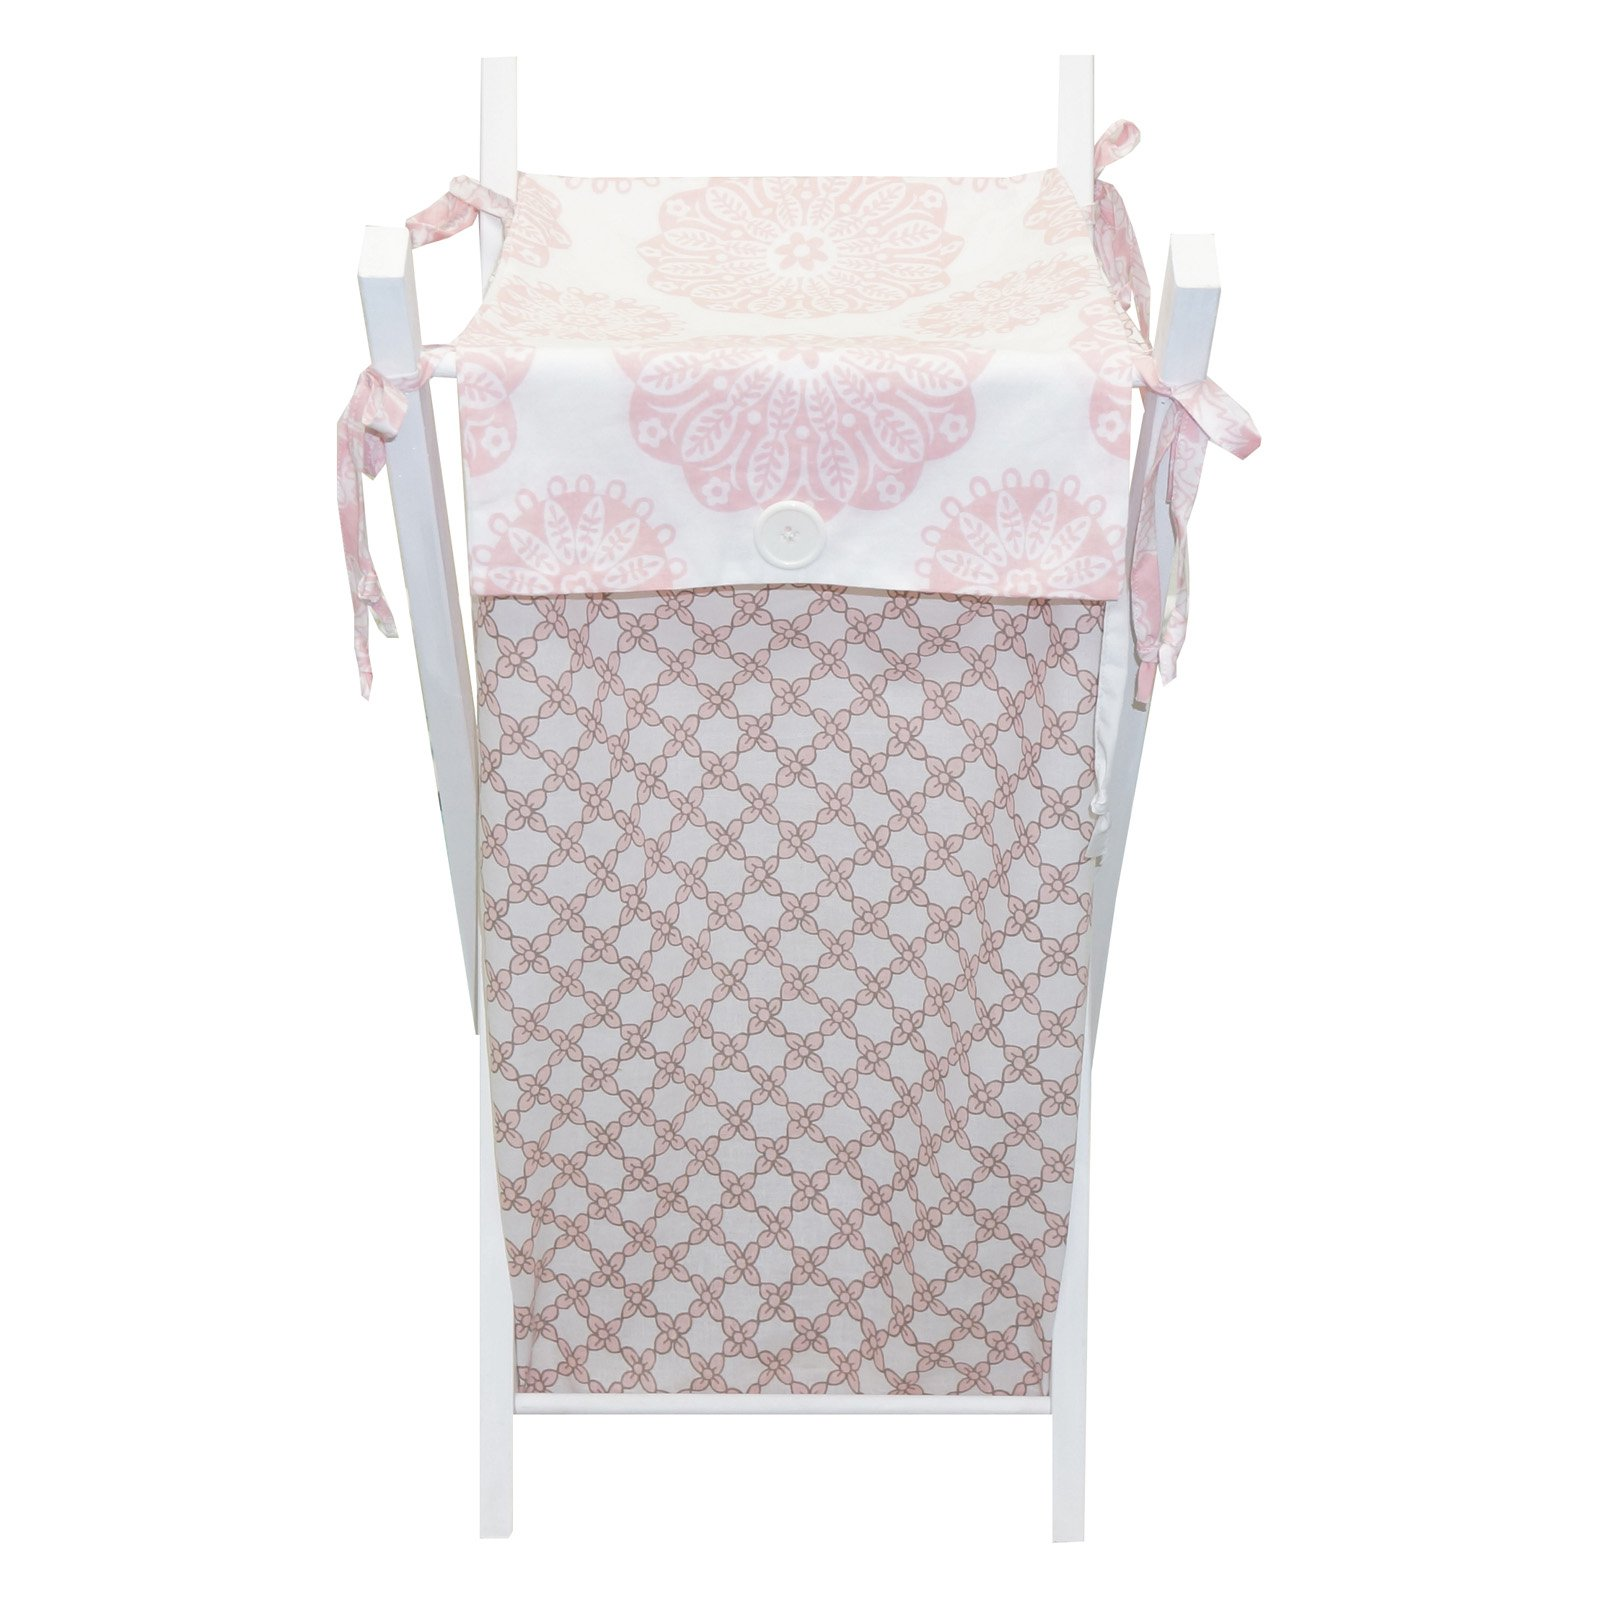 Sweet & Simple Pink Hamper by Cotton Tale Designs by Cotton Tale Designs